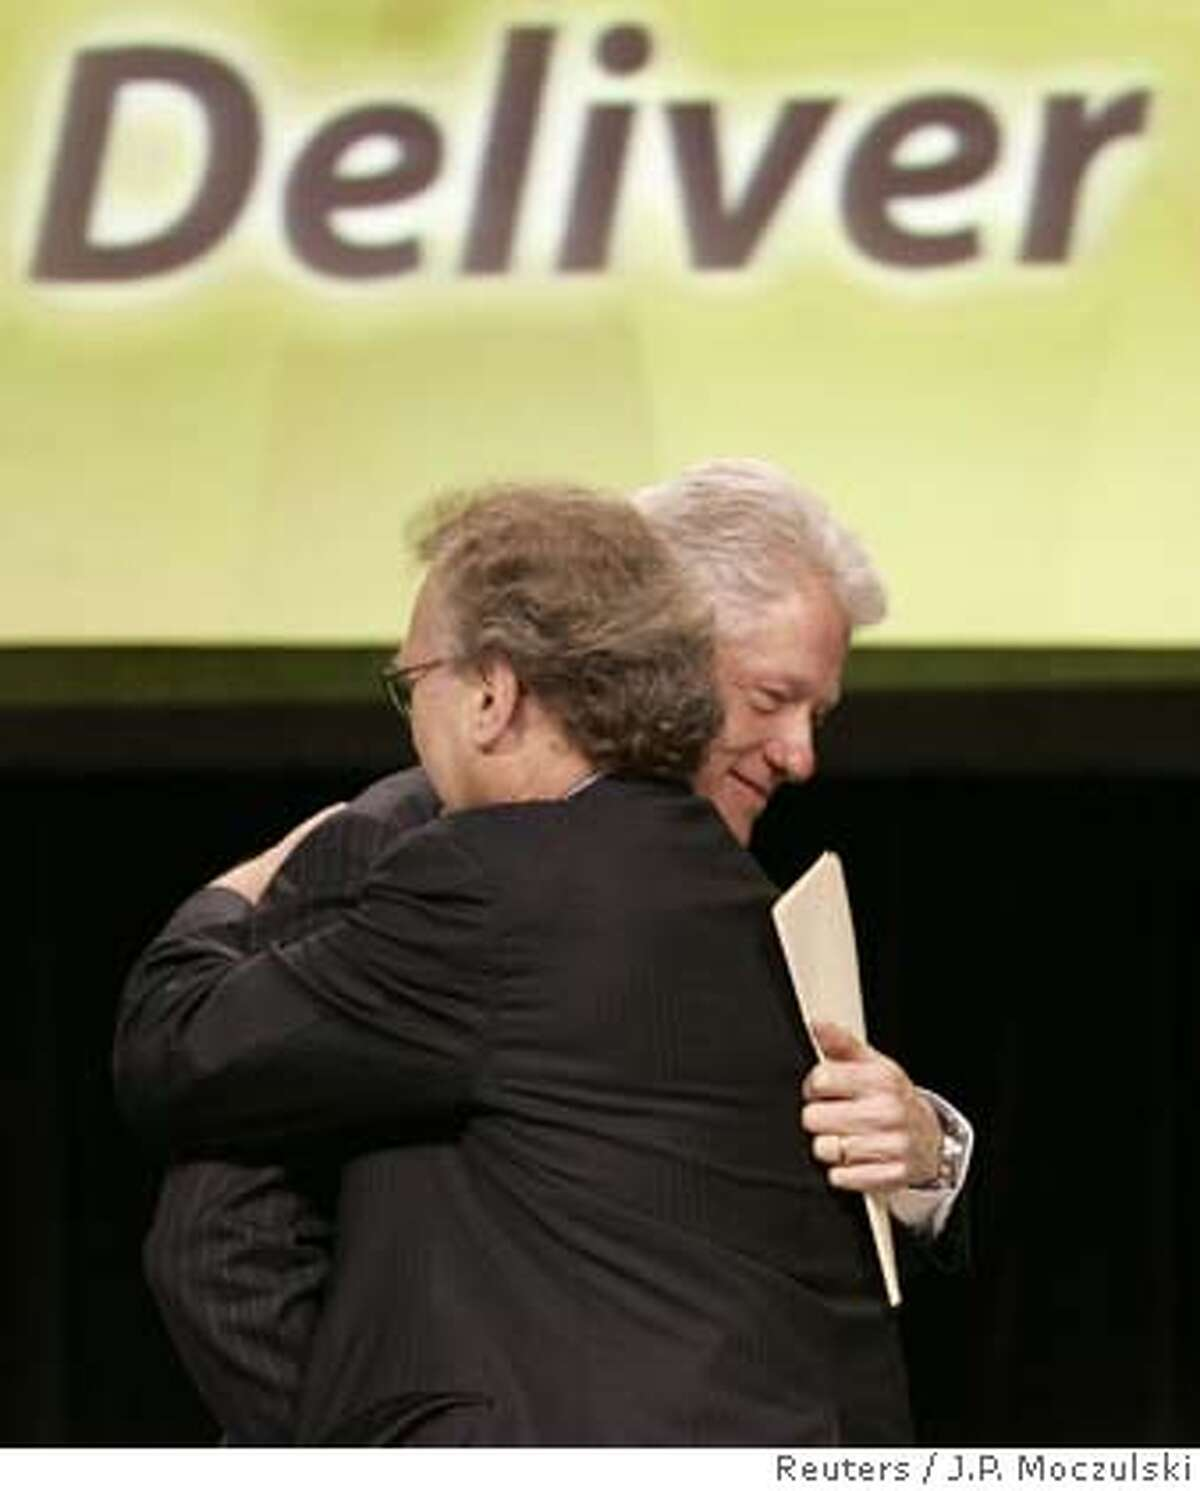 Former U.S. President Bill Clinton (R) hugs UN Special Envoy for AIDS/HIV in Africa Stephen Lewis (L) at the start of a panel discussion at the Sixteenth International AIDS conference in Toronto August 15, 2006. REUTERS/J.P. Moczulski (CANADA) 0